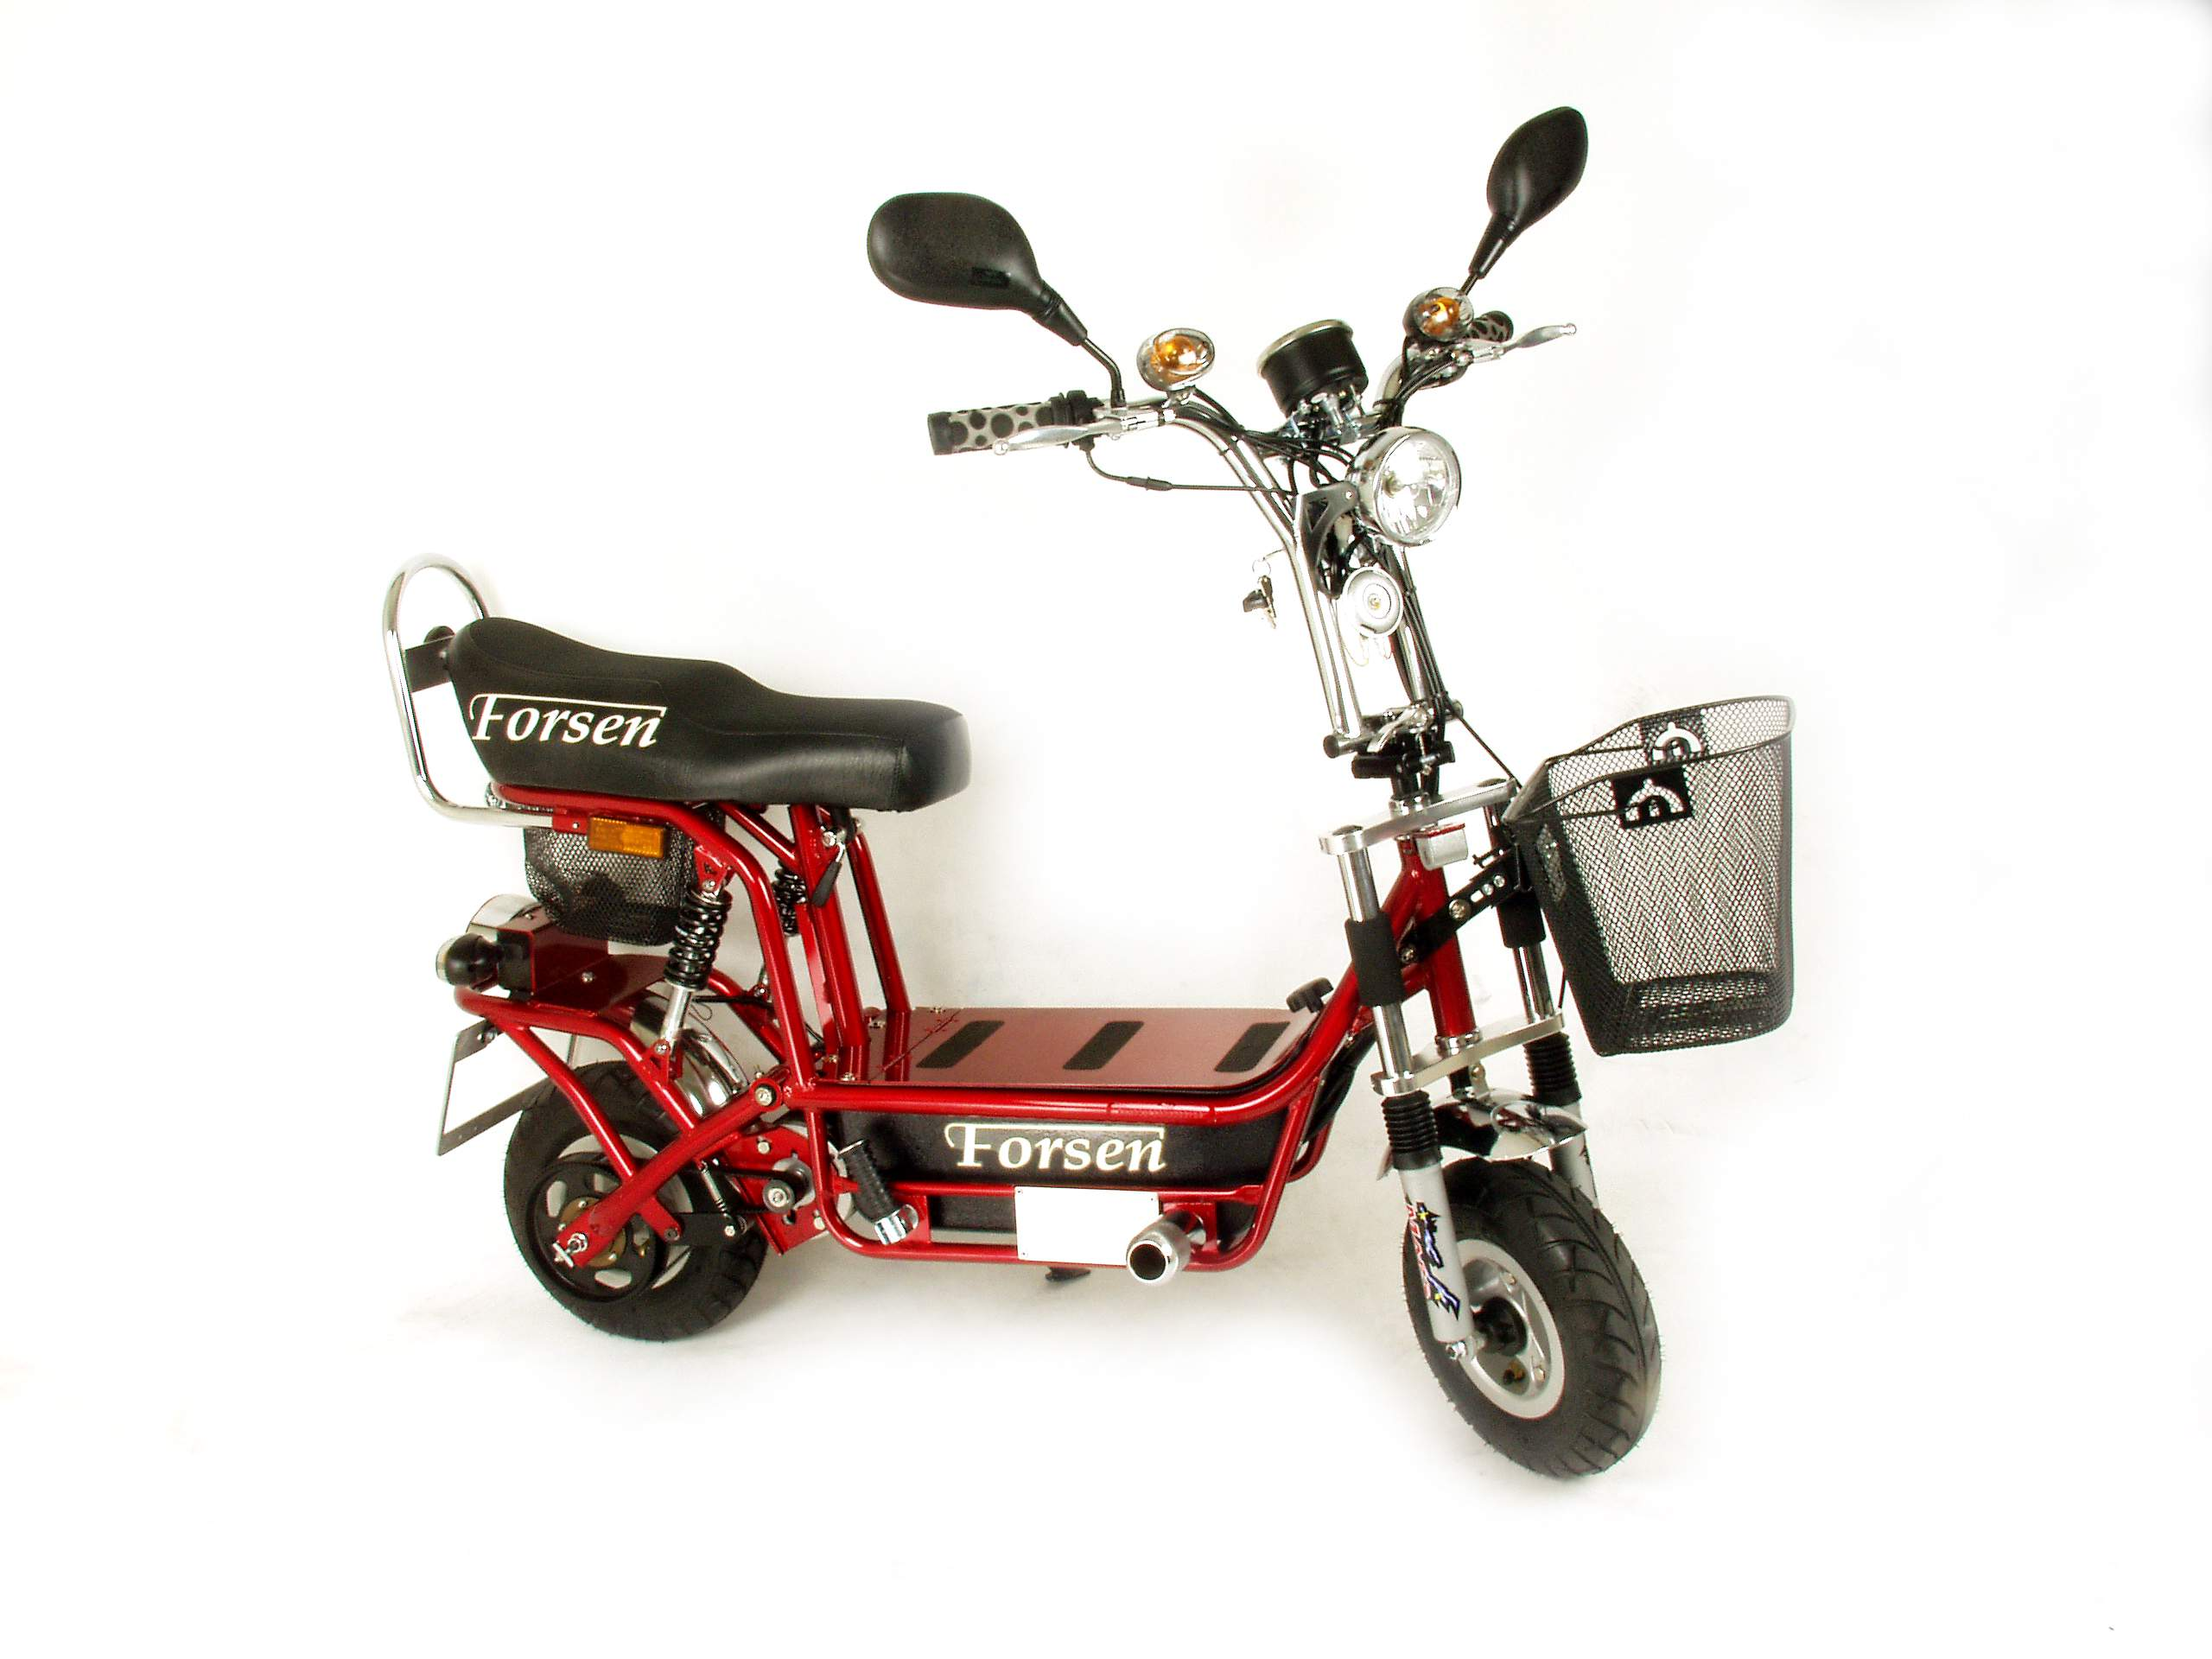 Forsen US DOT & Europe E Mark Approval Heavy Duty Electric Moped